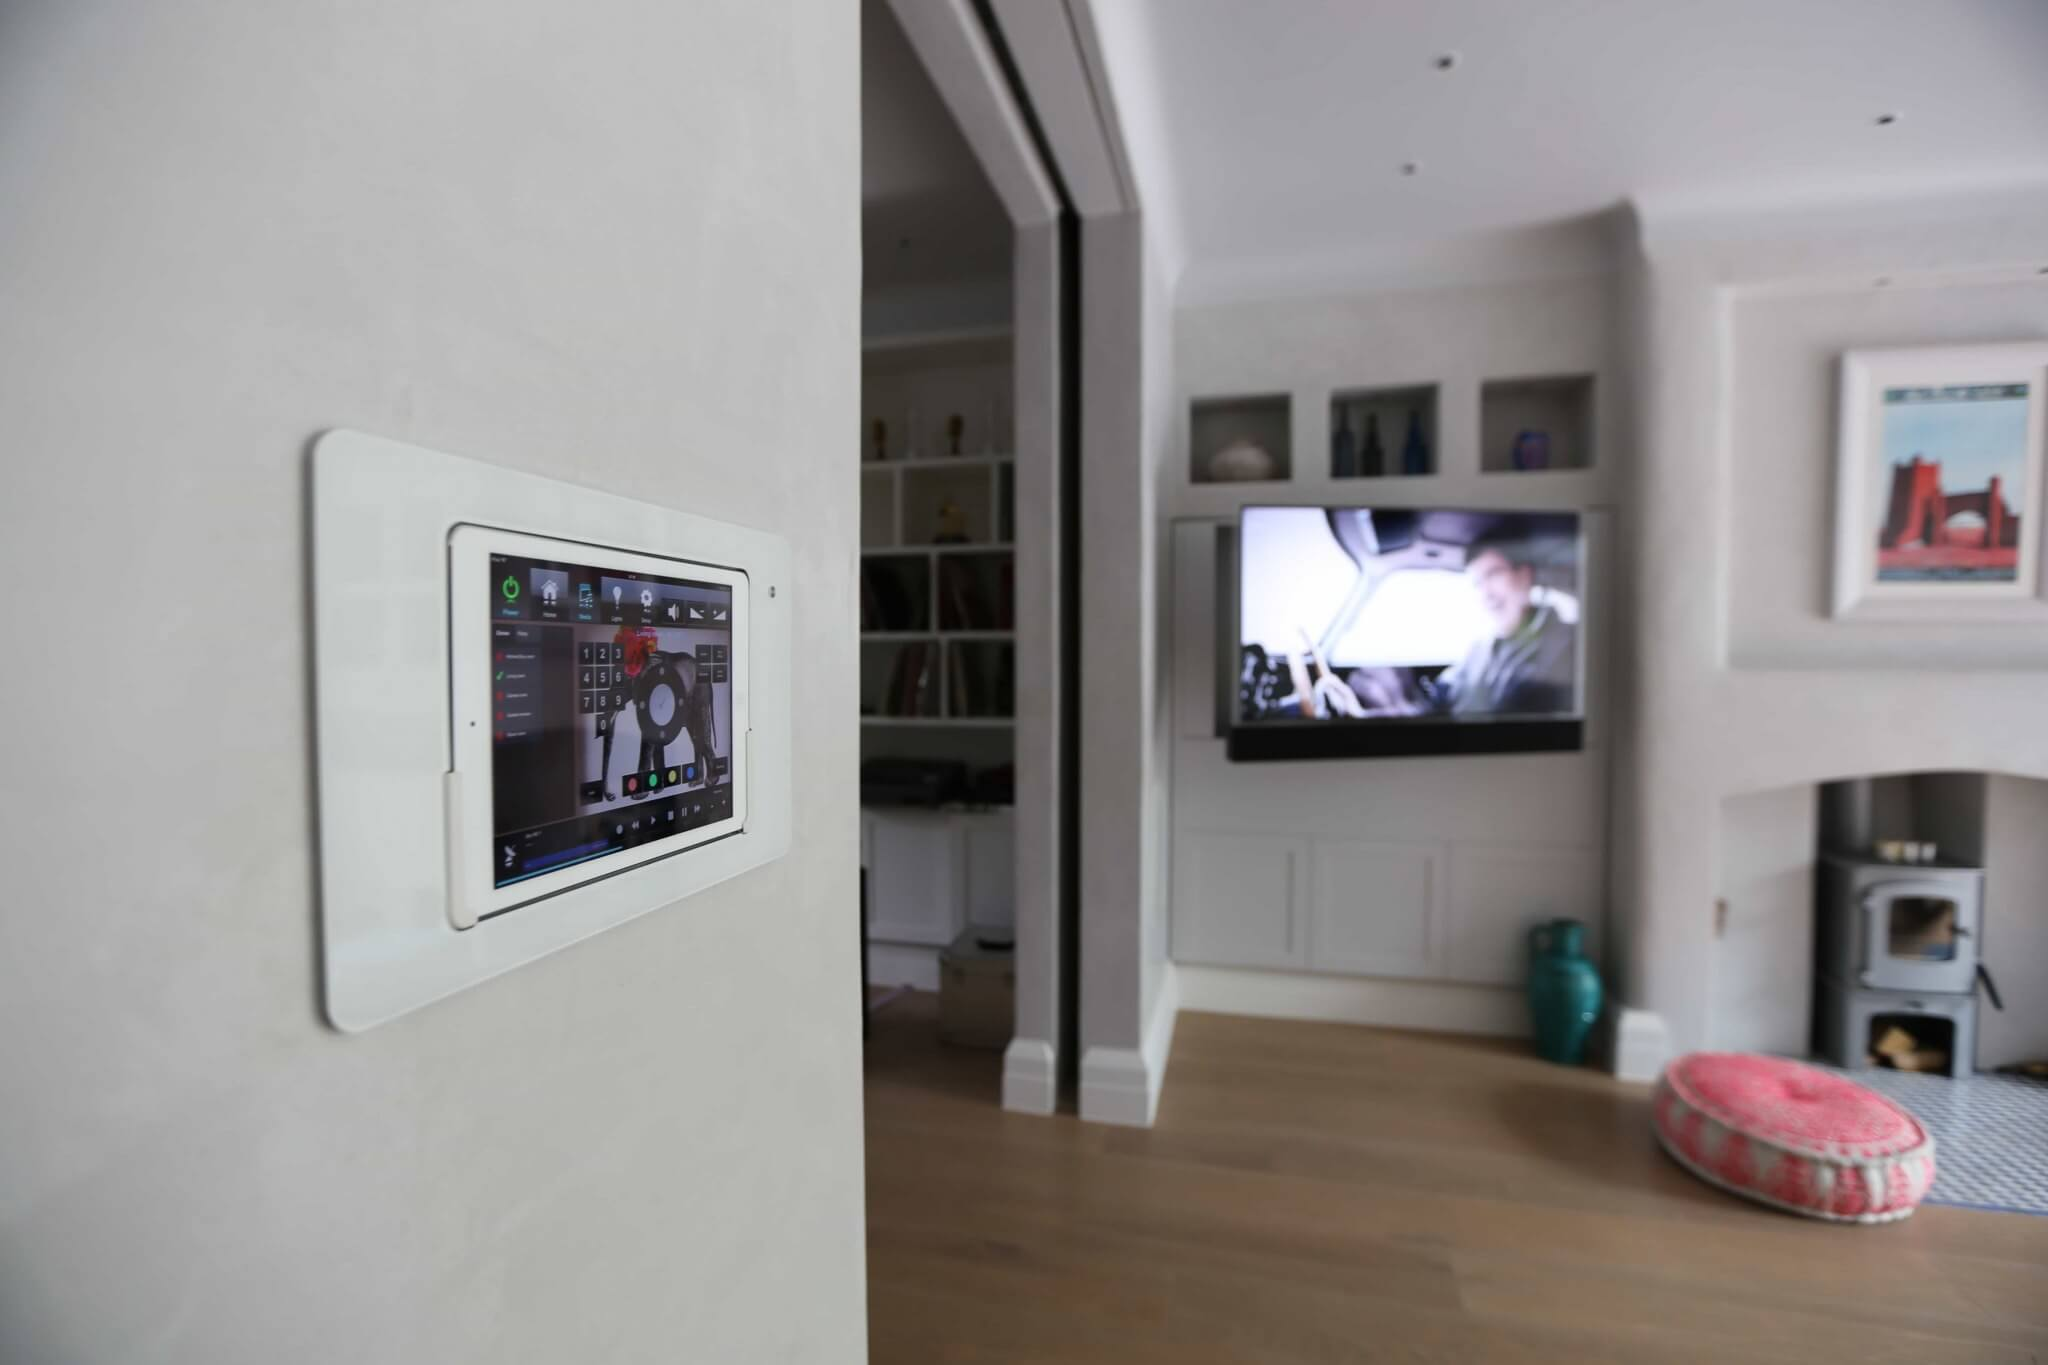 iPad in-wall solution for Crestron Control